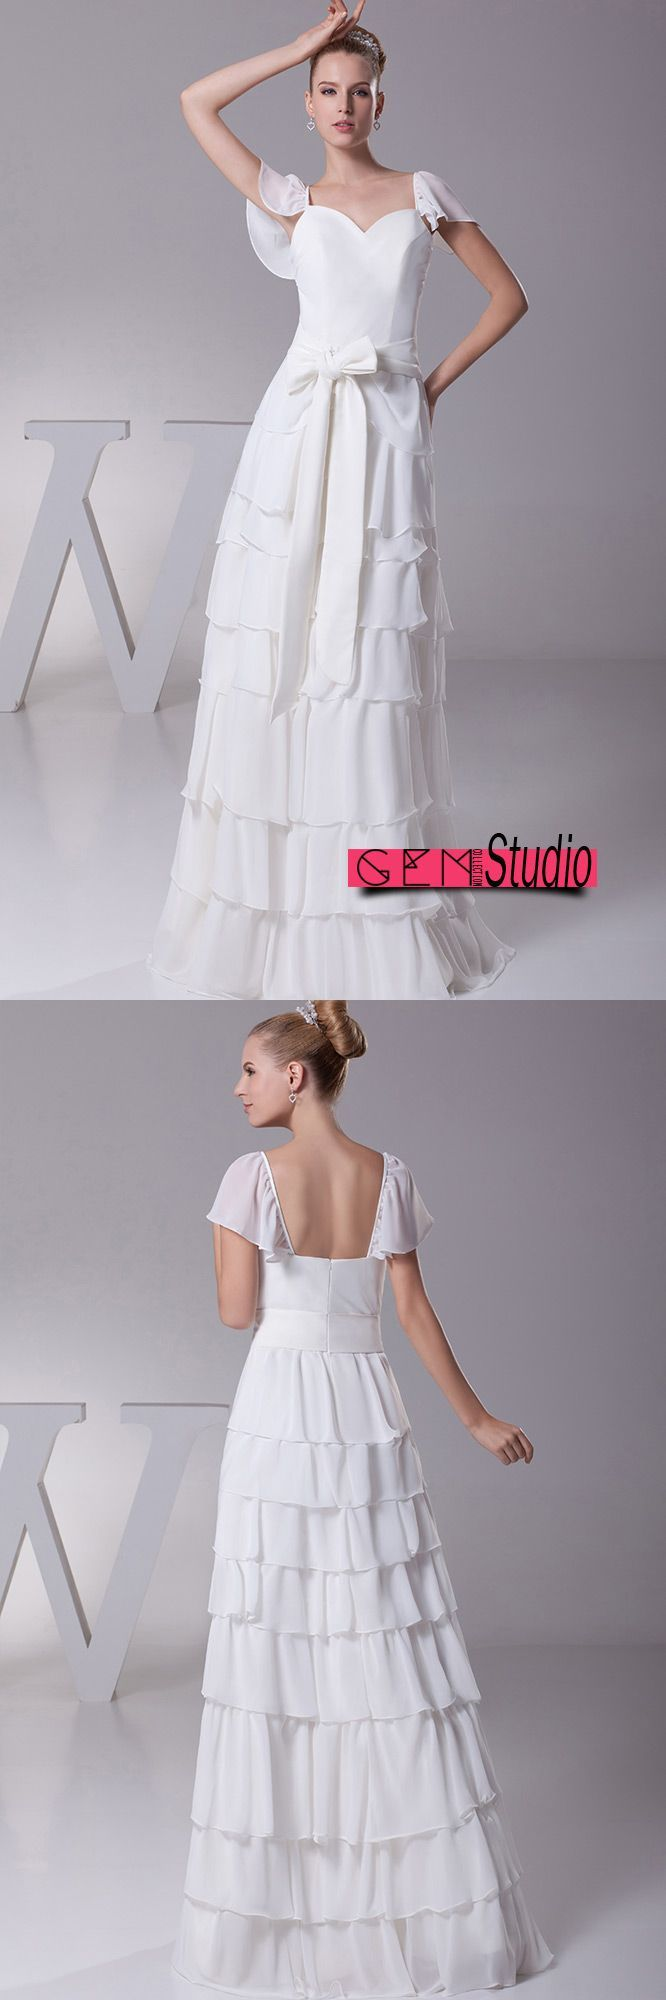 Sweetheart layered sash white bridal dress with cap sleeves op